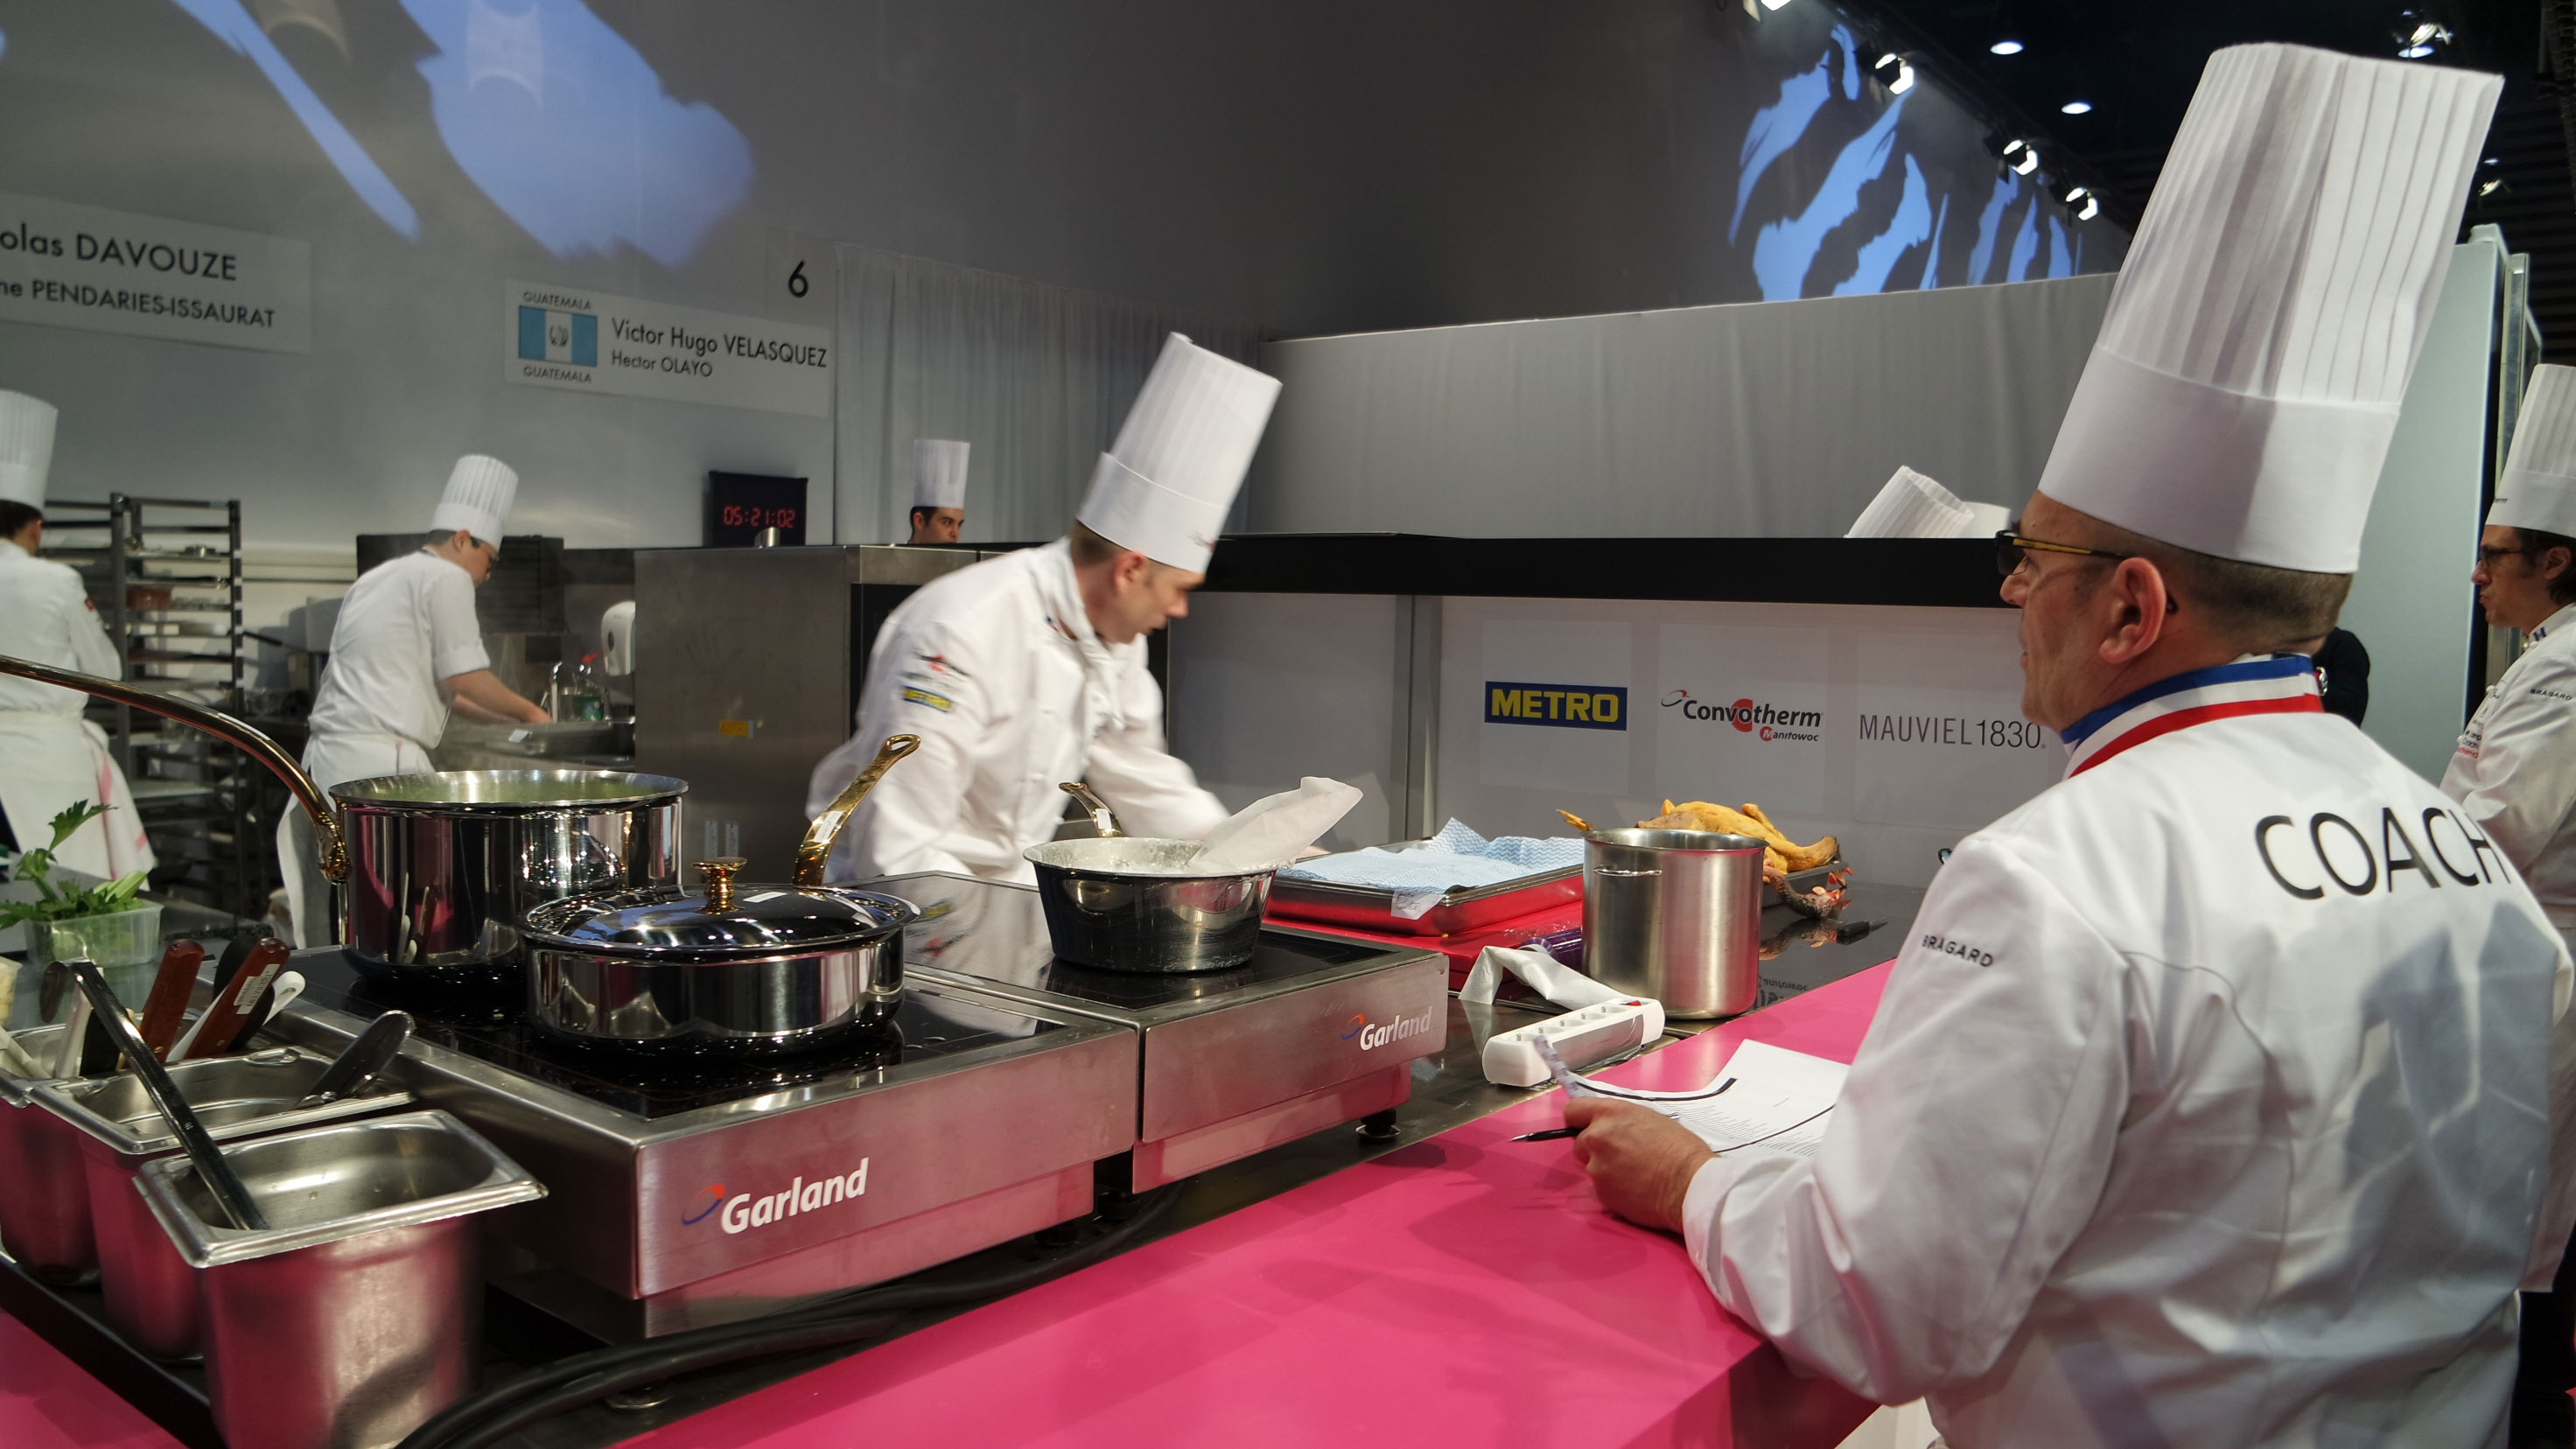 France départ Bocuse d'or 2015